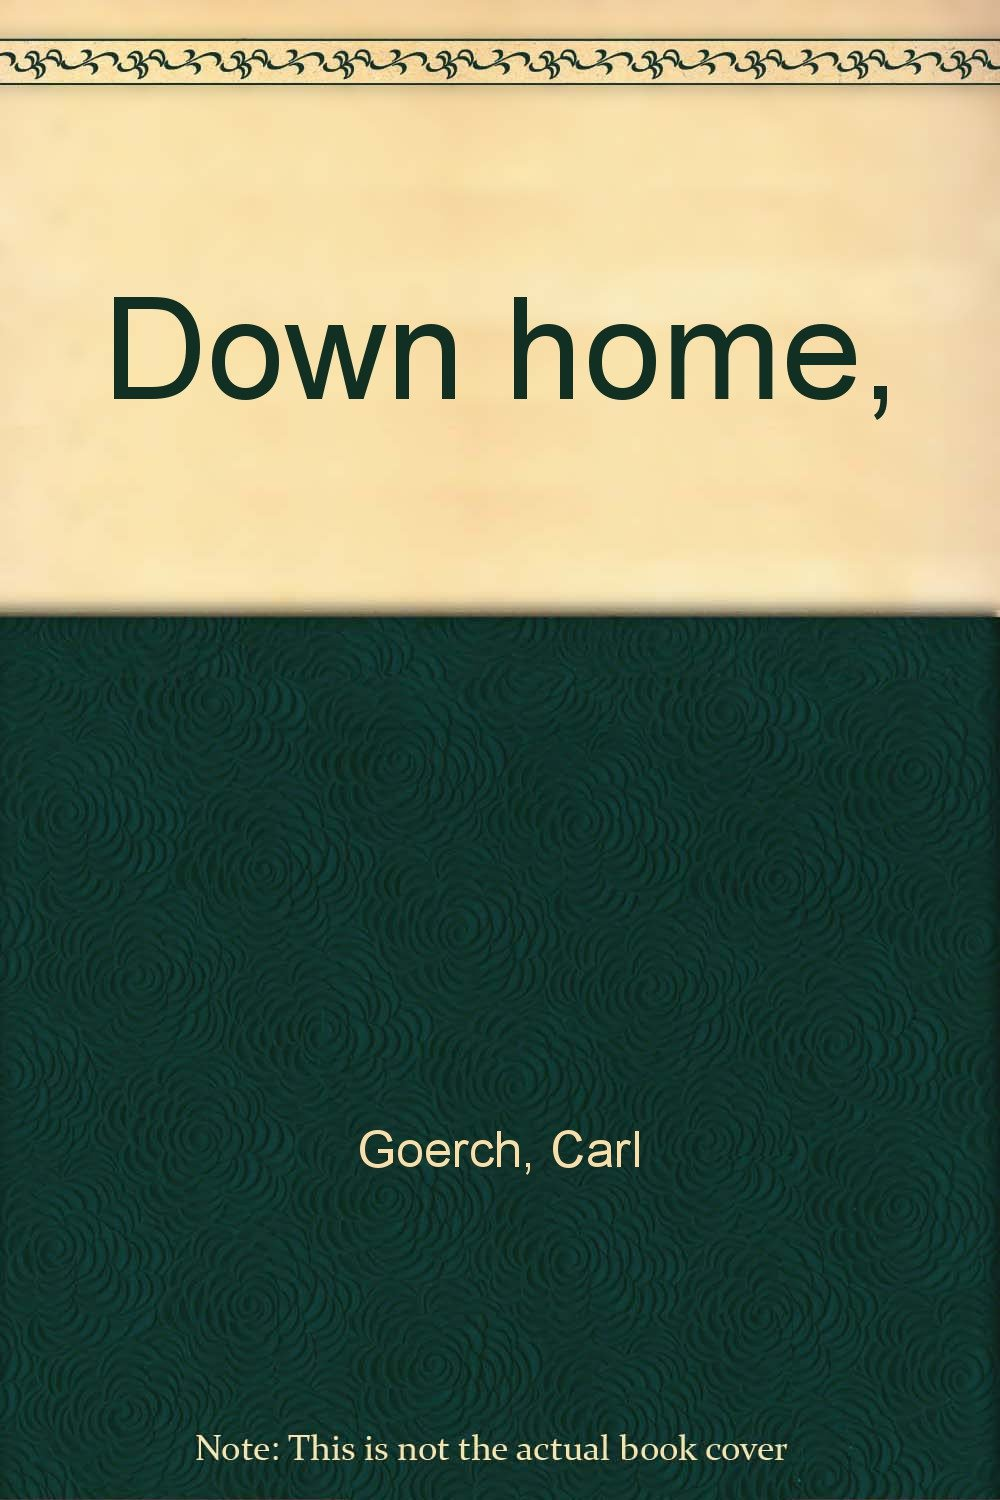 Down home,